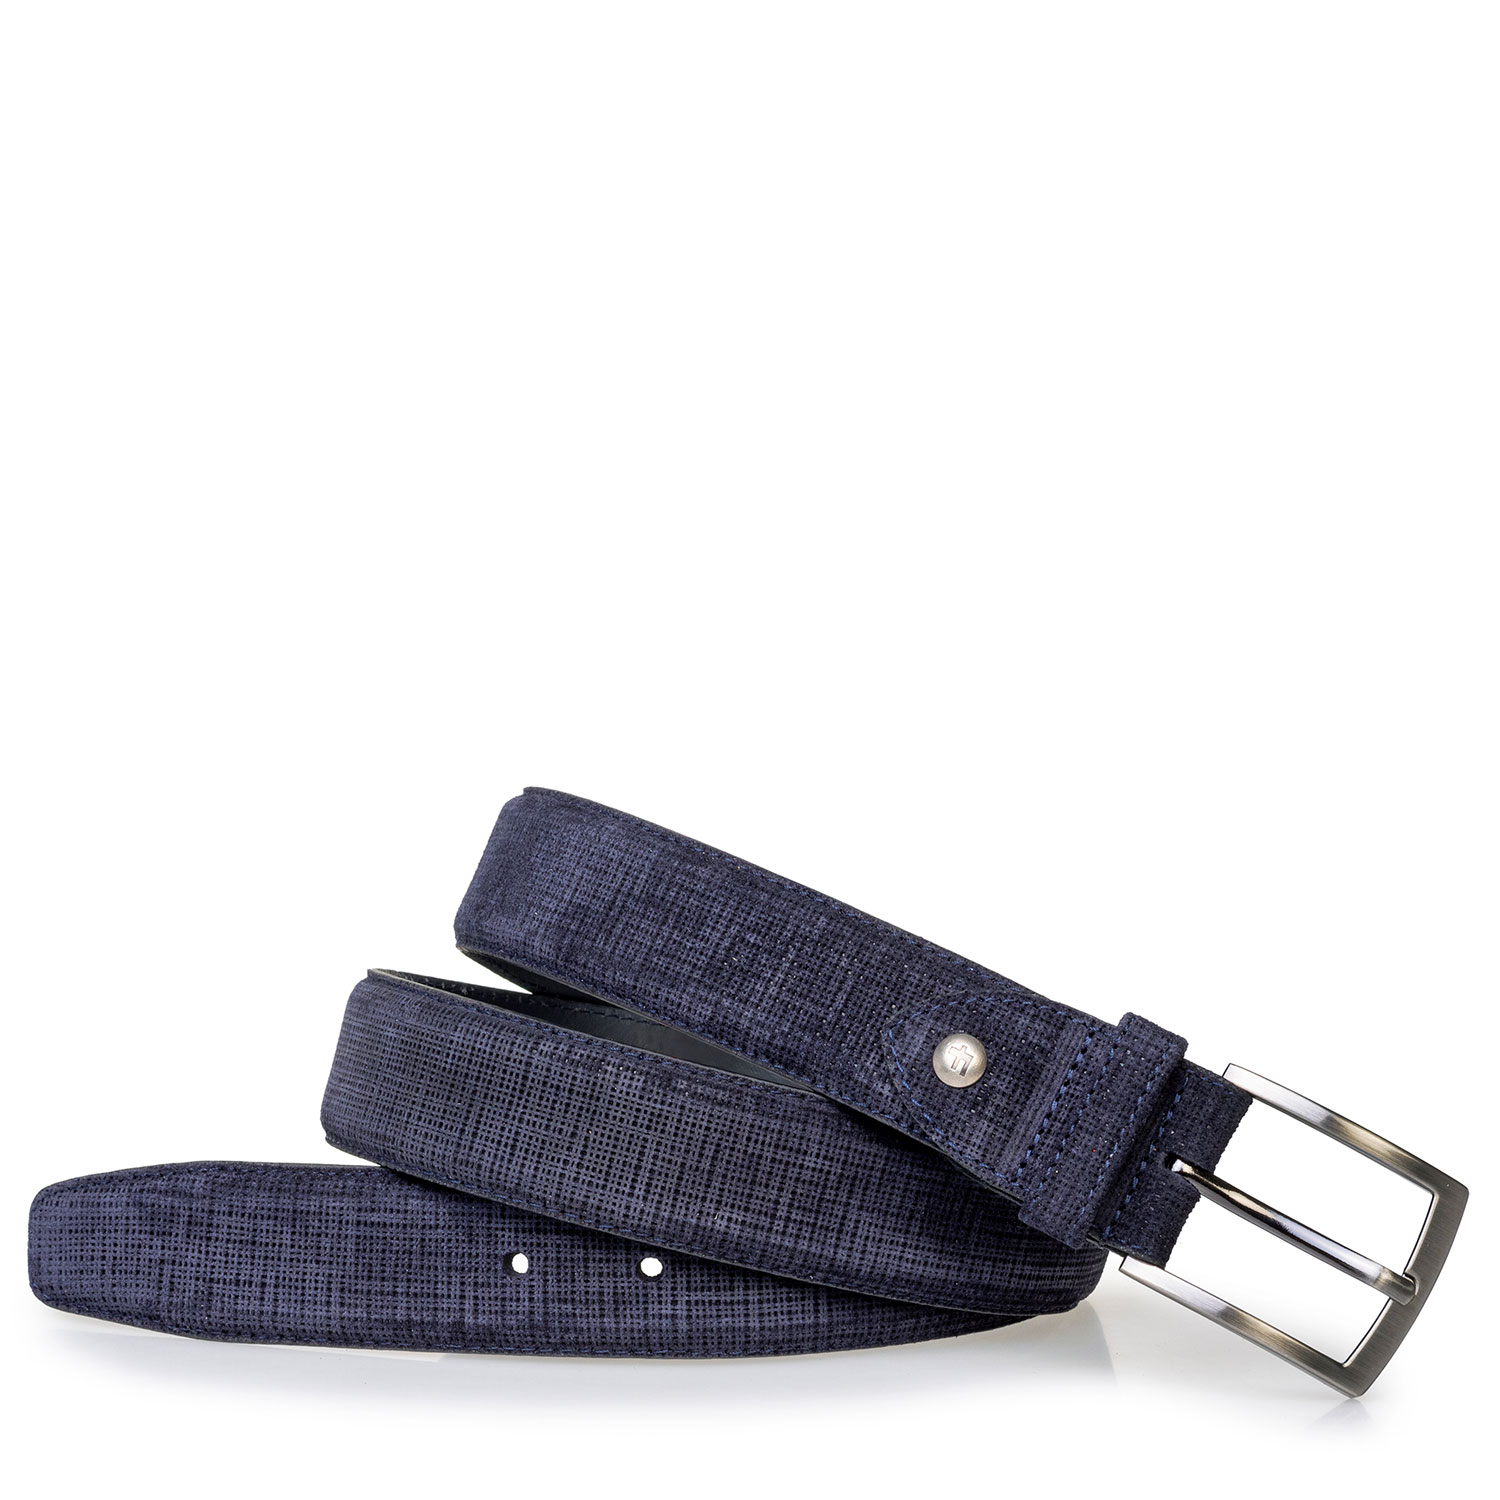 75203/96 - Belt printed suede leather blue